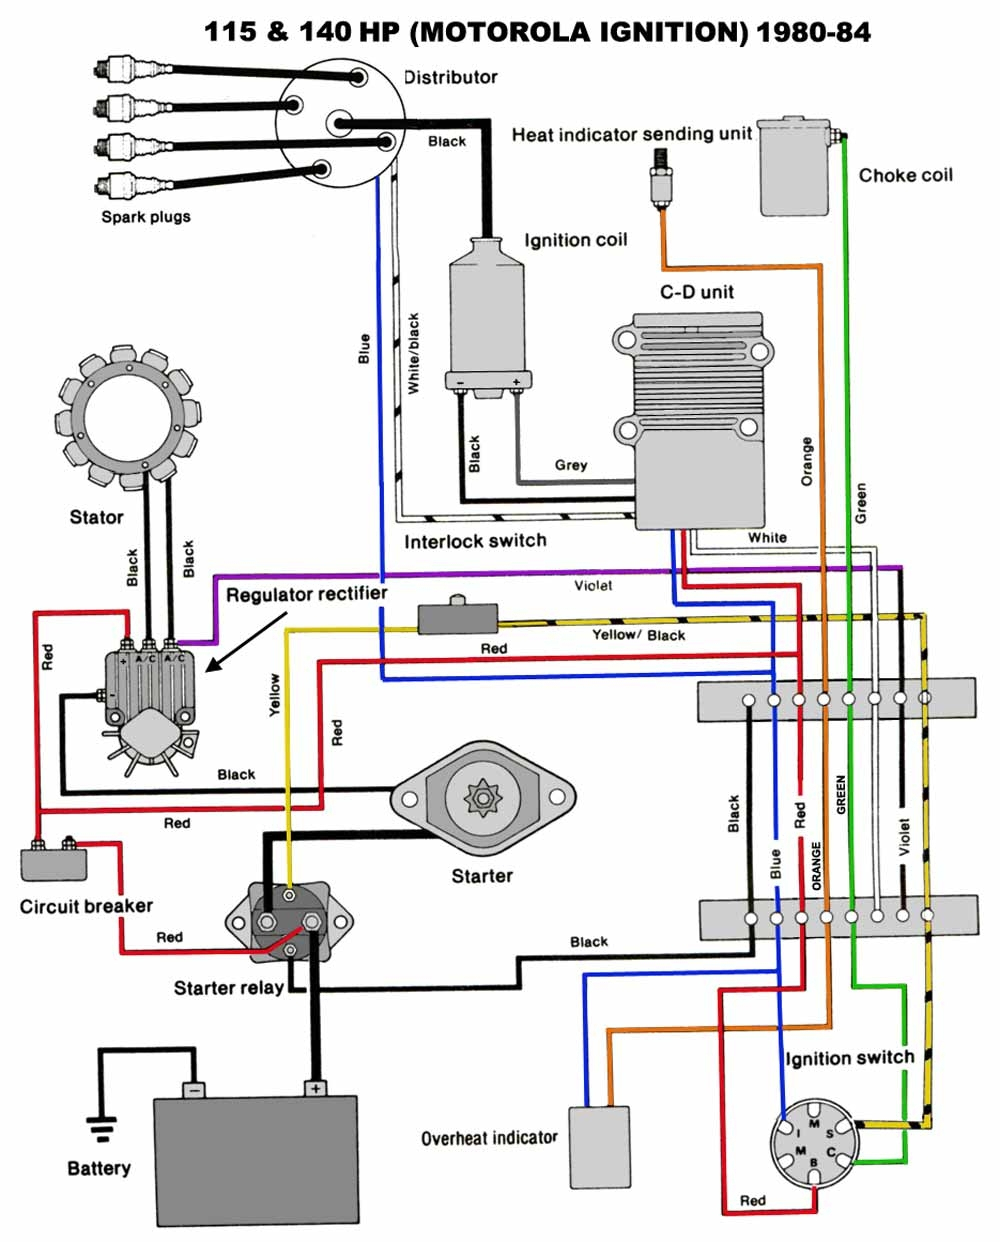 Wiring Diagram For Yamaha 115 Outboard - Wiring Diagrams - Yamaha Outboard Gauges Wiring Diagram